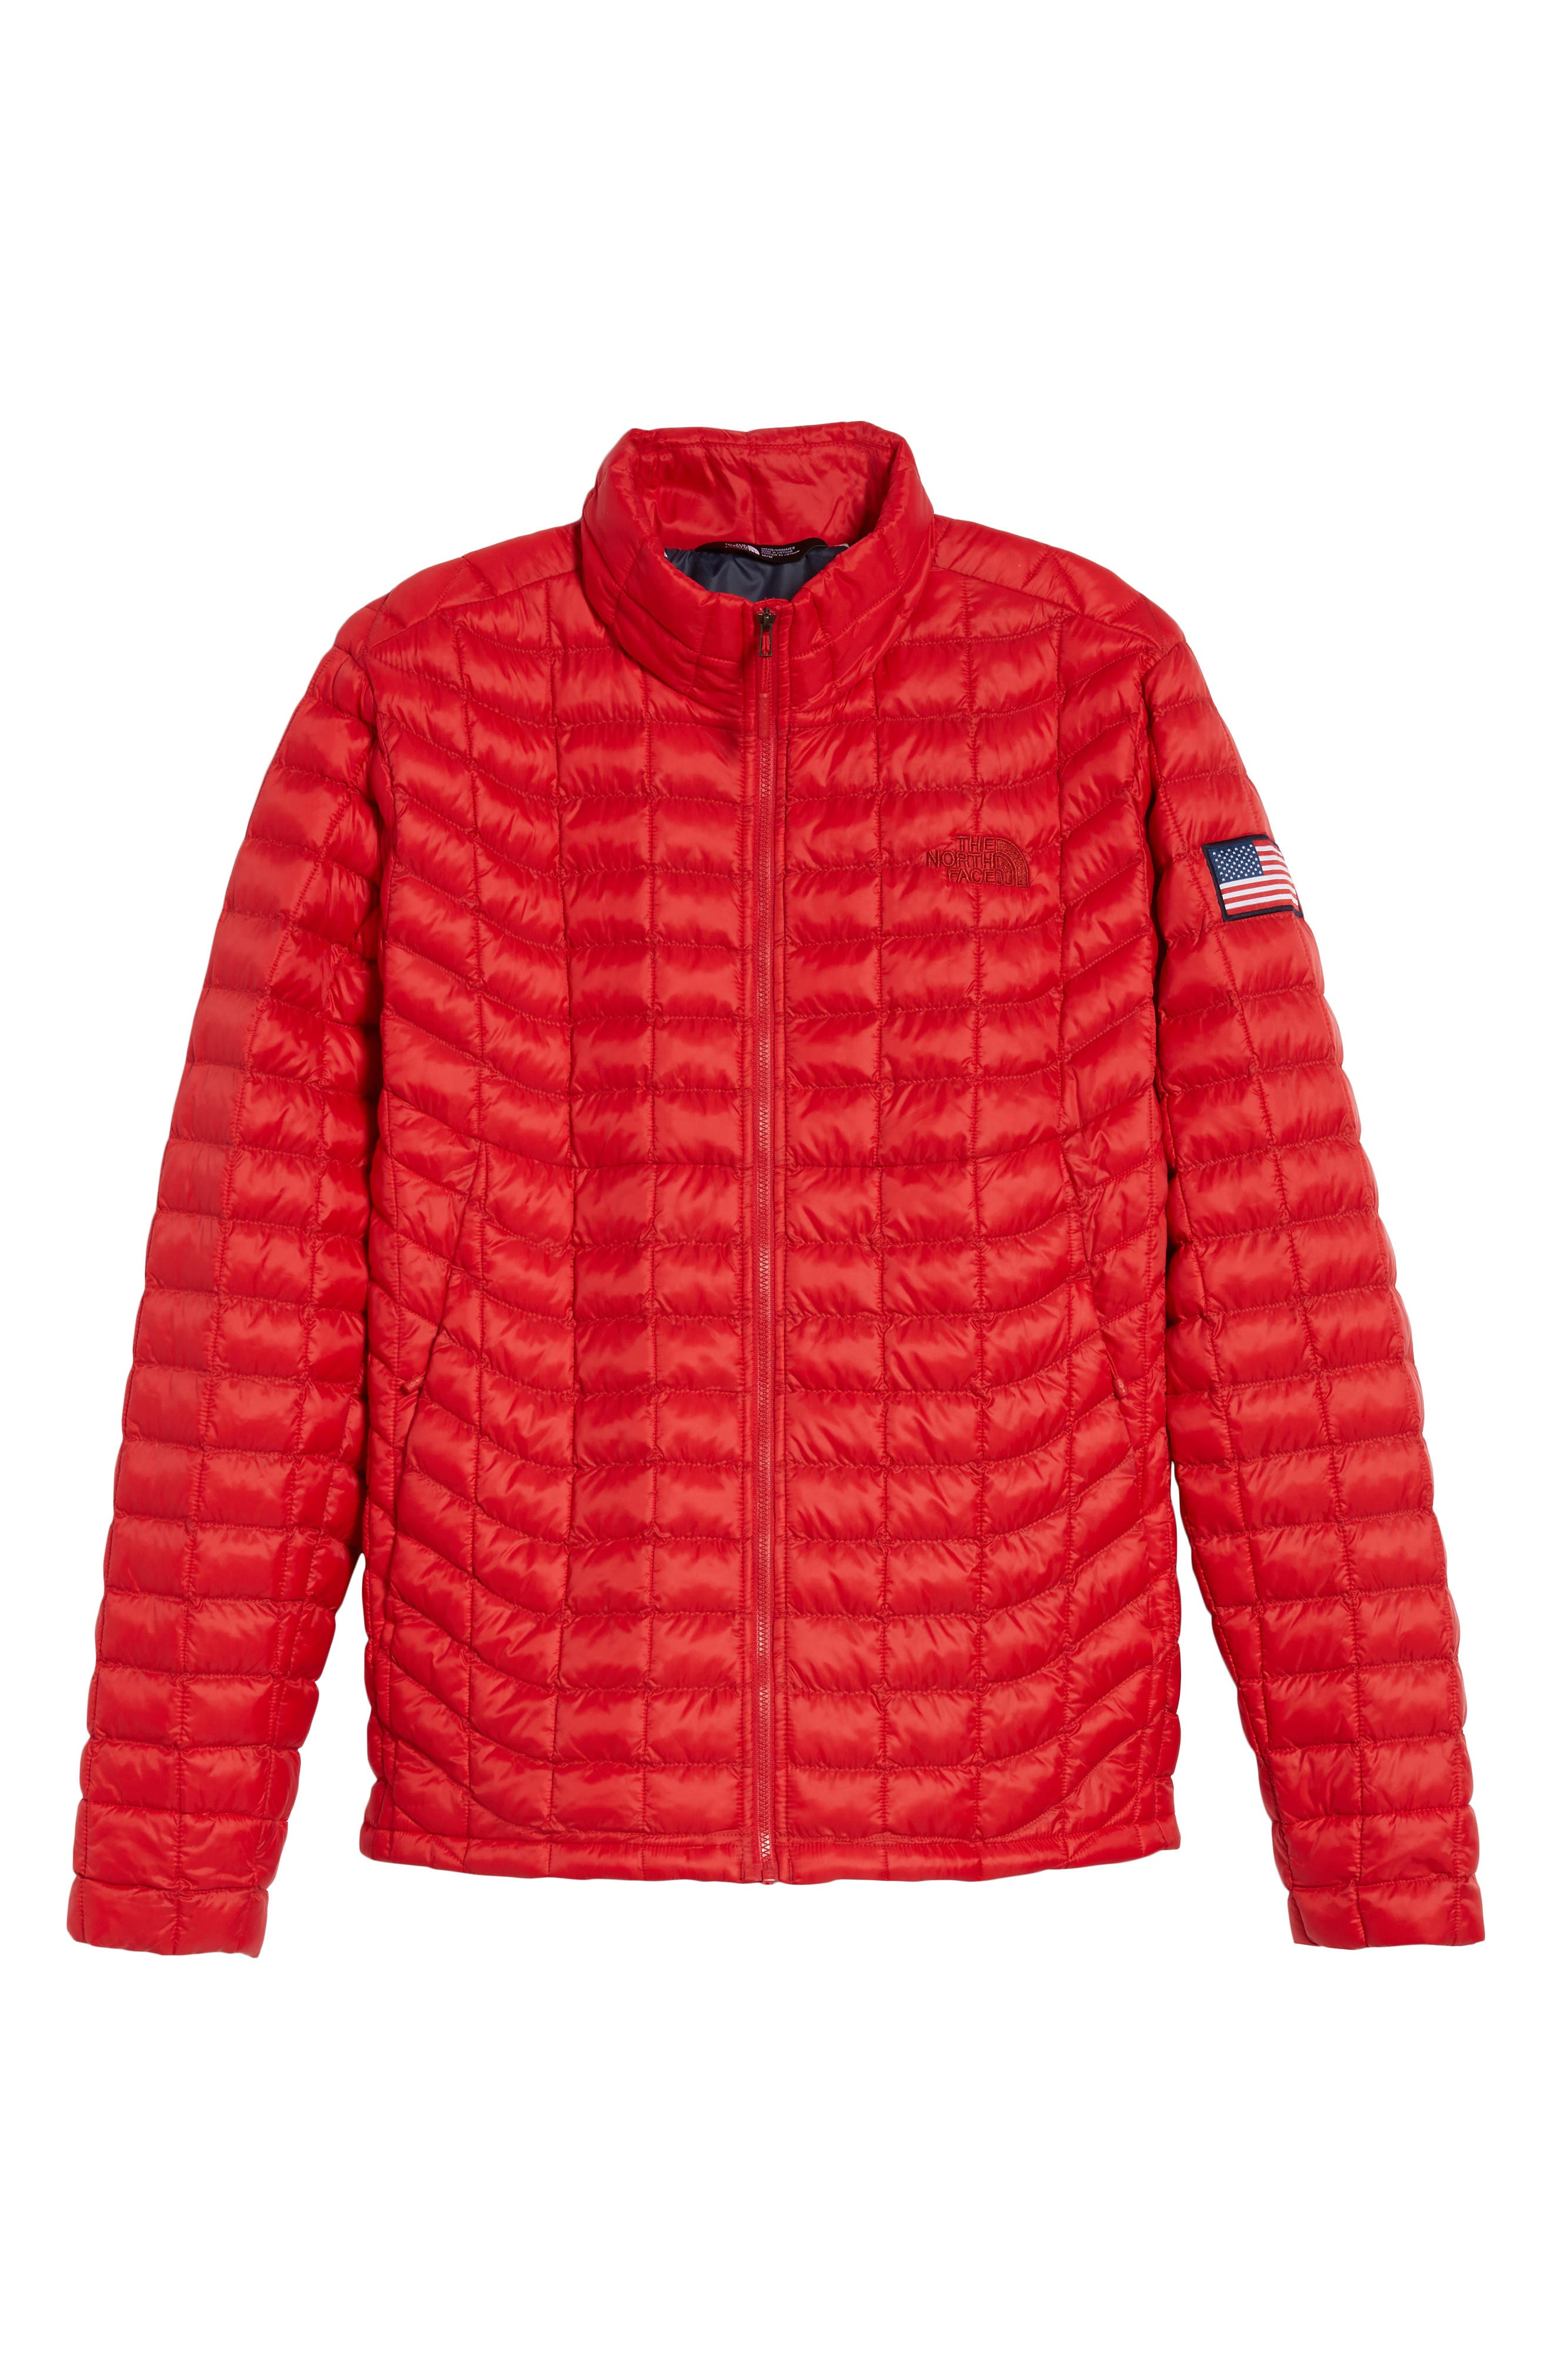 International Collection ThermoBall PrimaLoft<sup>®</sup> Jacket,                             Alternate thumbnail 6, color,                             Red